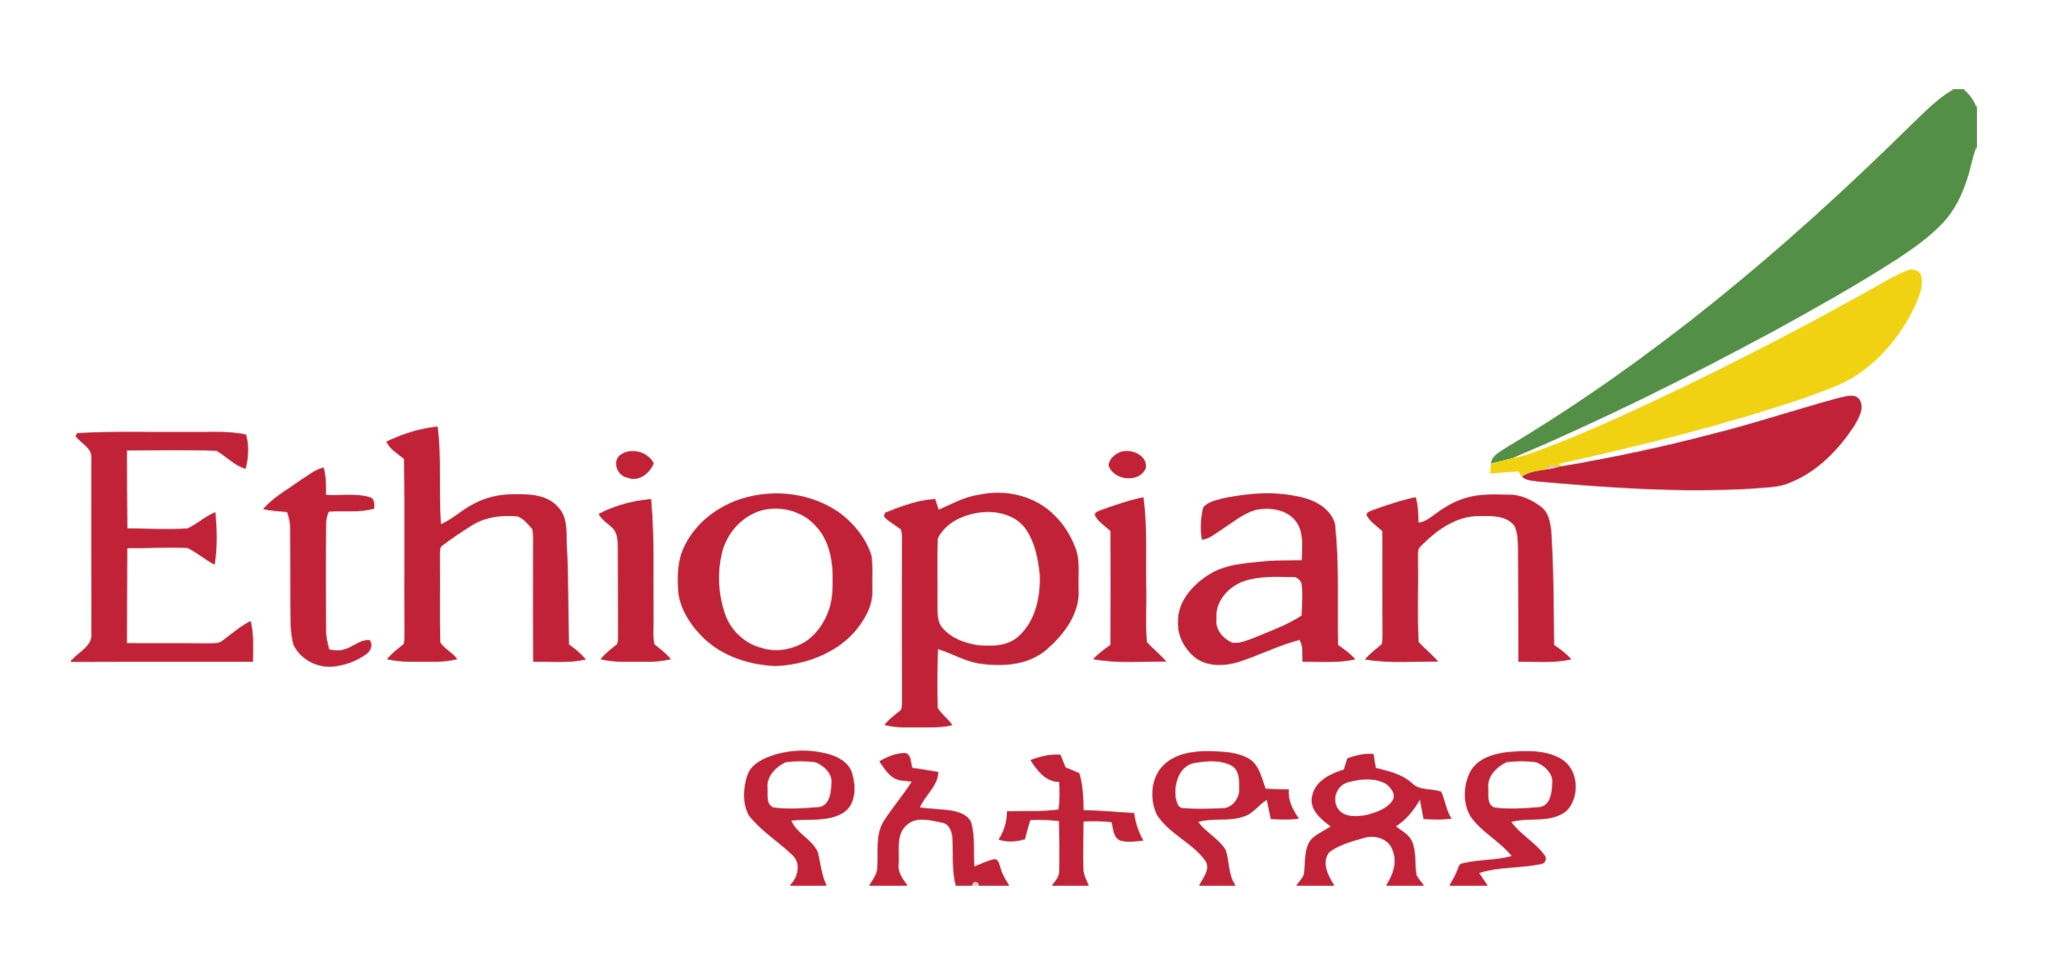 Shop ethiopianairlines.com